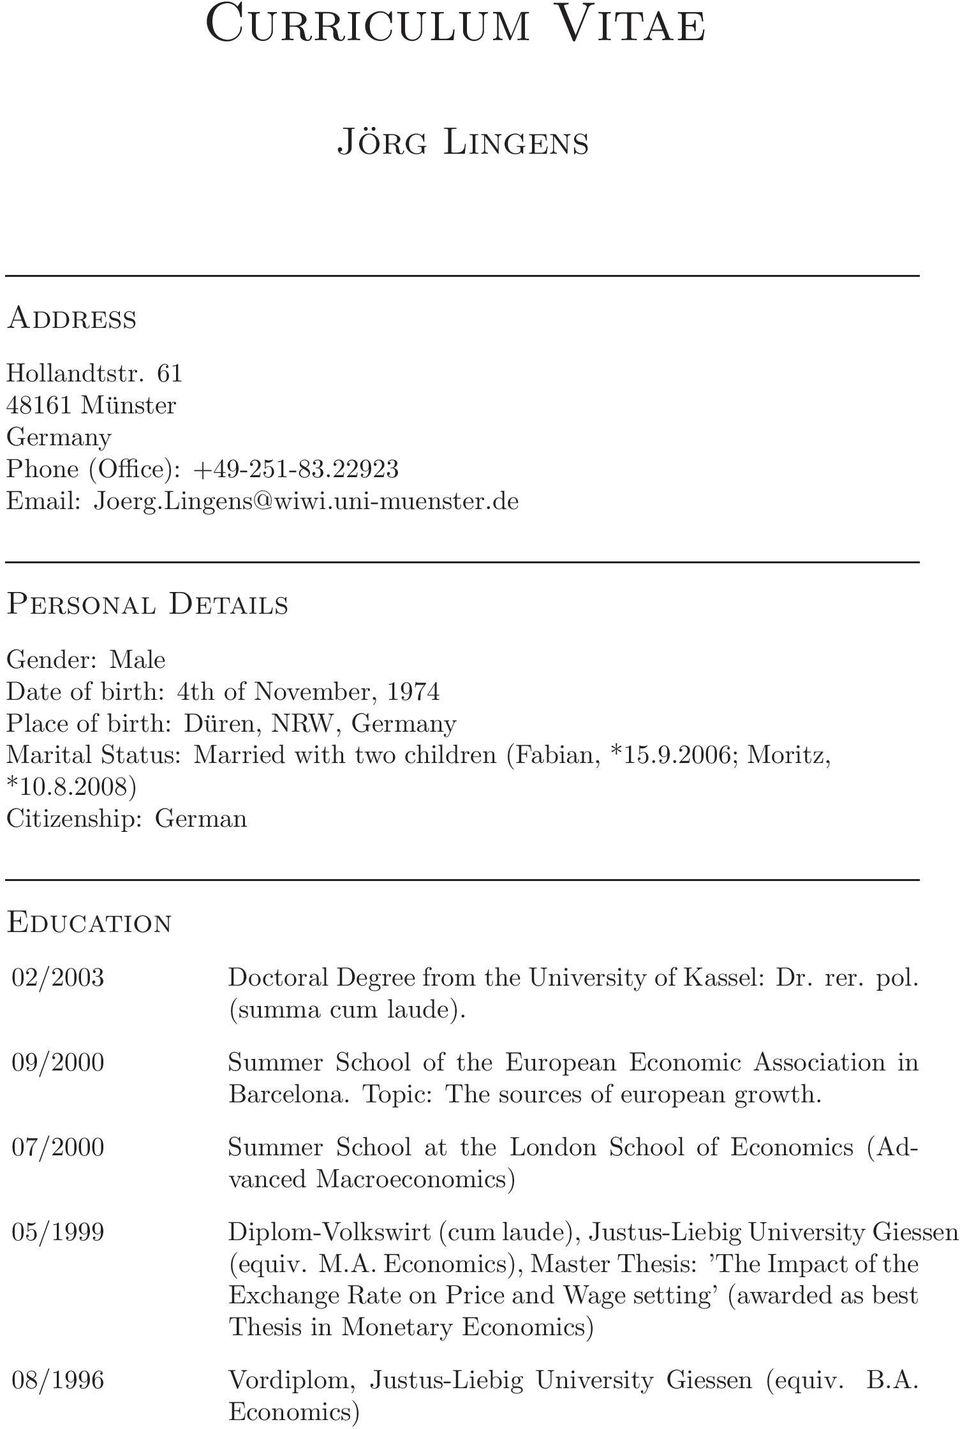 2008) Citizenship: German Education 02/2003 Doctoral Degree from the University of Kassel: Dr. rer. pol. (summa cum laude). 09/2000 Summer School of the European Economic Association in Barcelona.